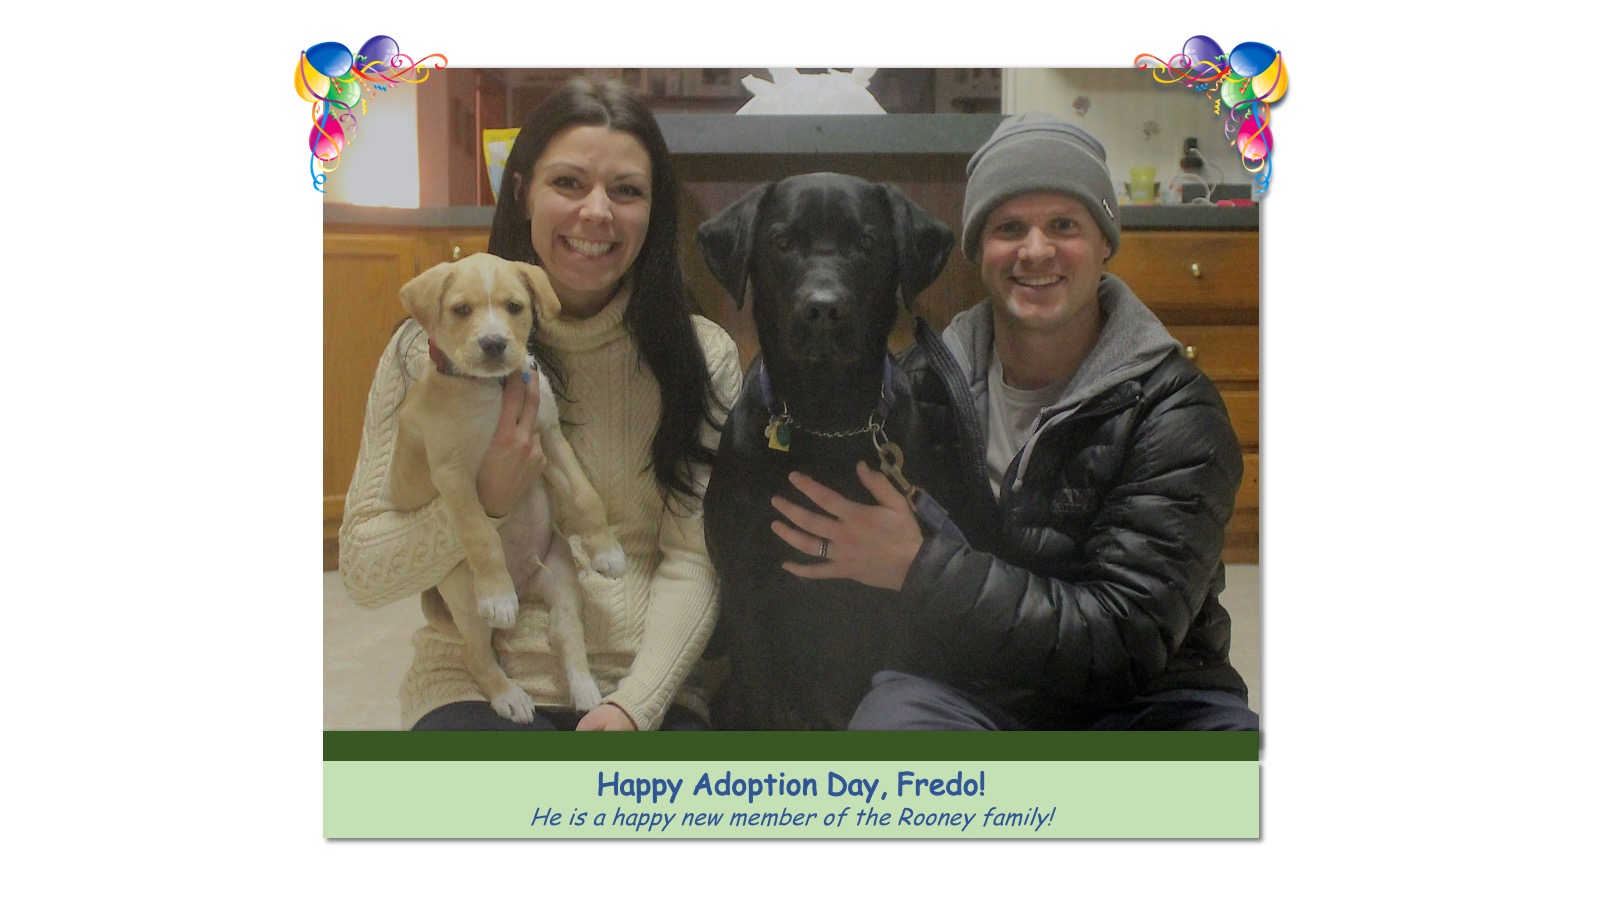 Fredo_Adoption_Photo_2018.jpg